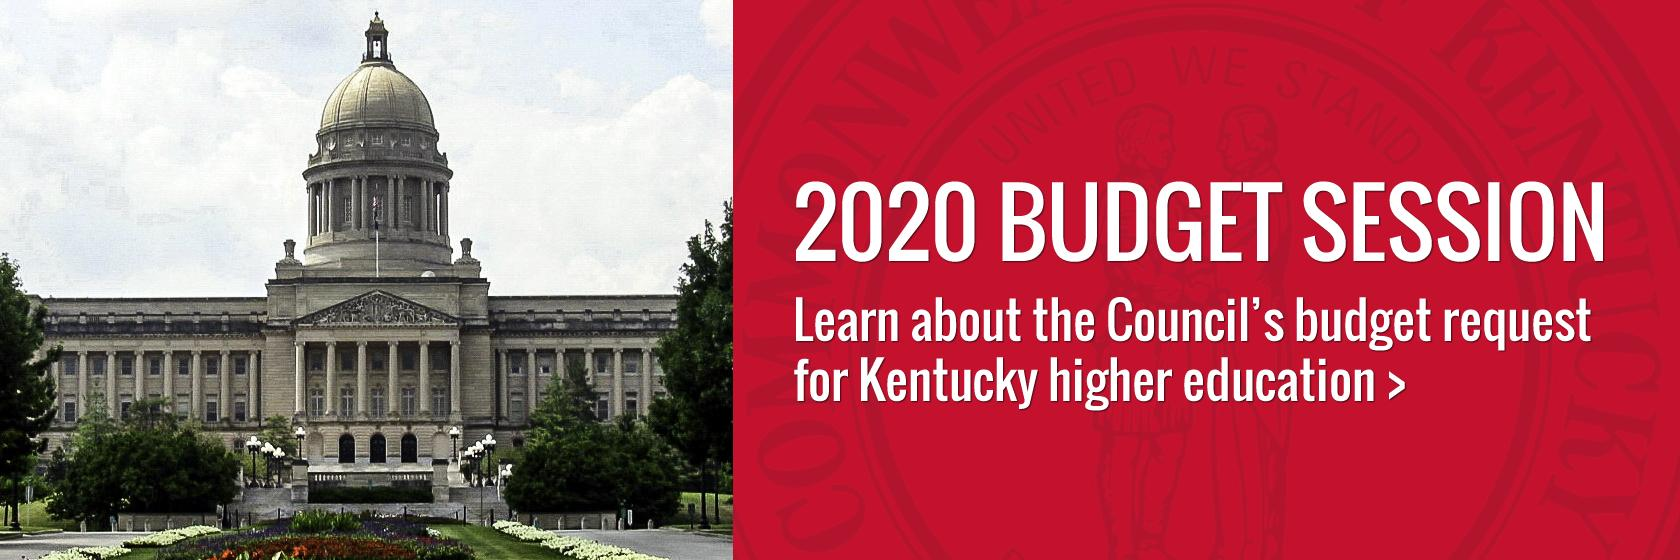 Learn about the Council's budget request for Kentucky higher education.